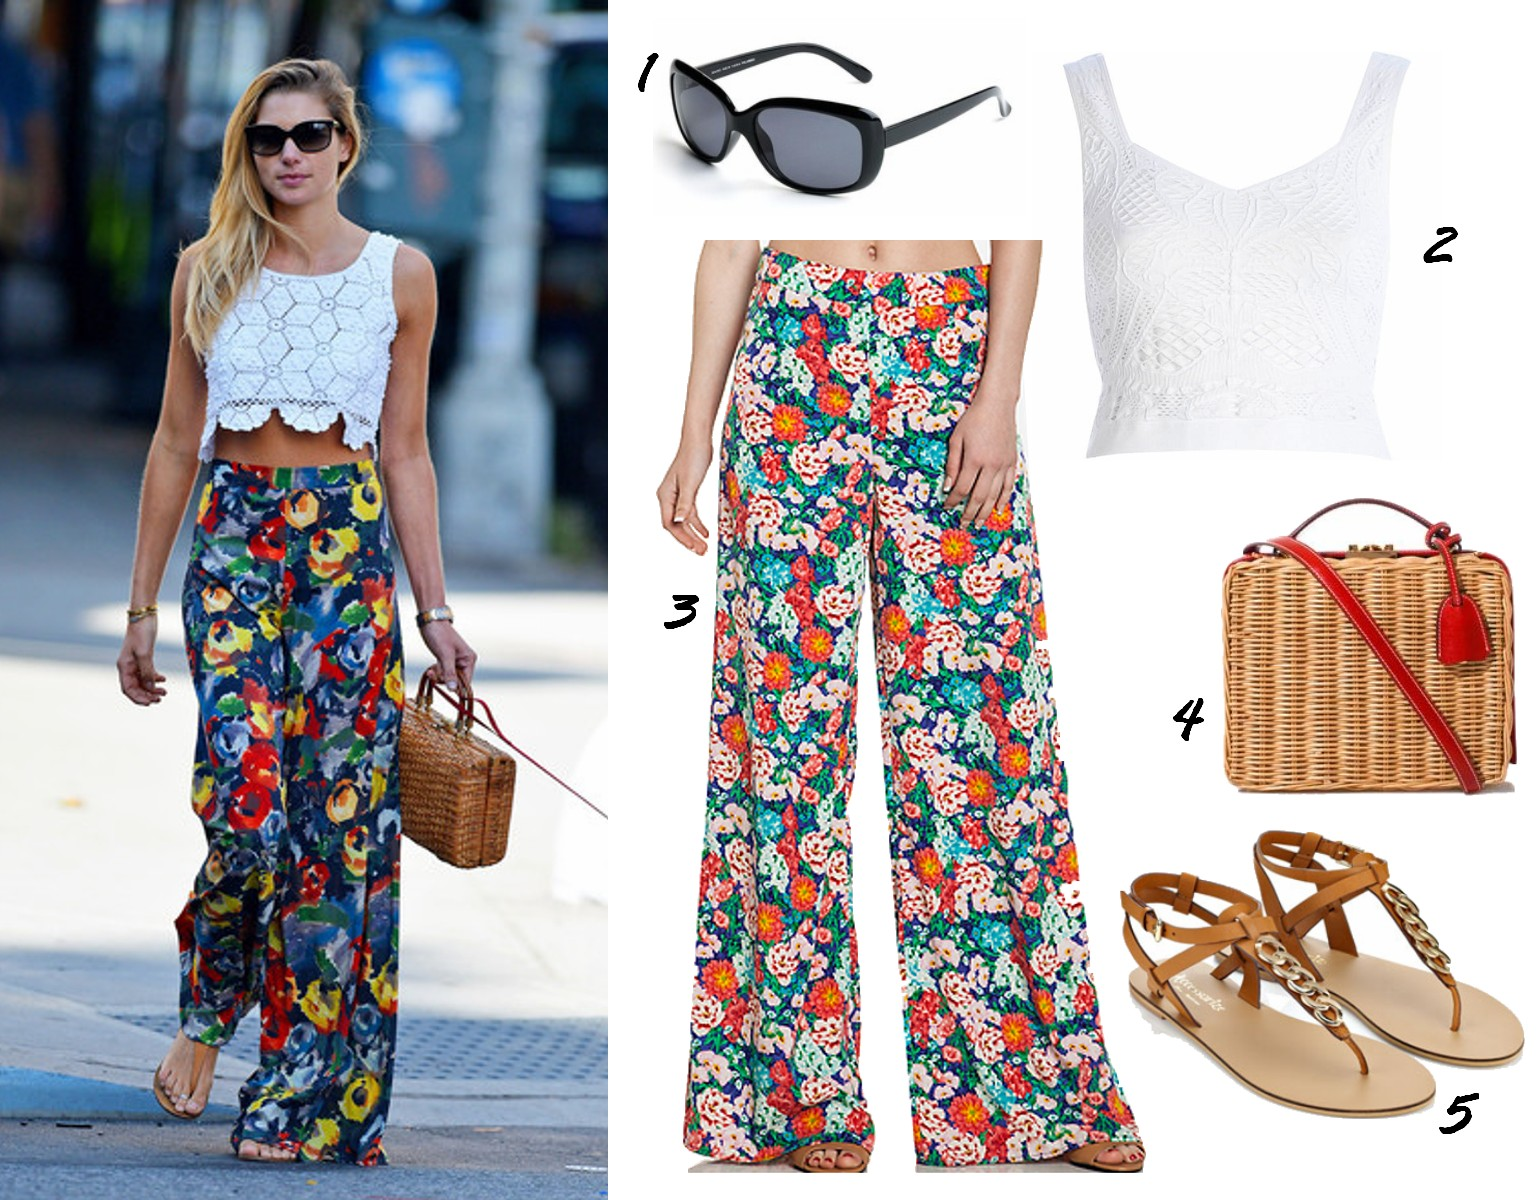 a54cd64faa96 ... a nice way to wear a crop top - with floral wide-legged pants.